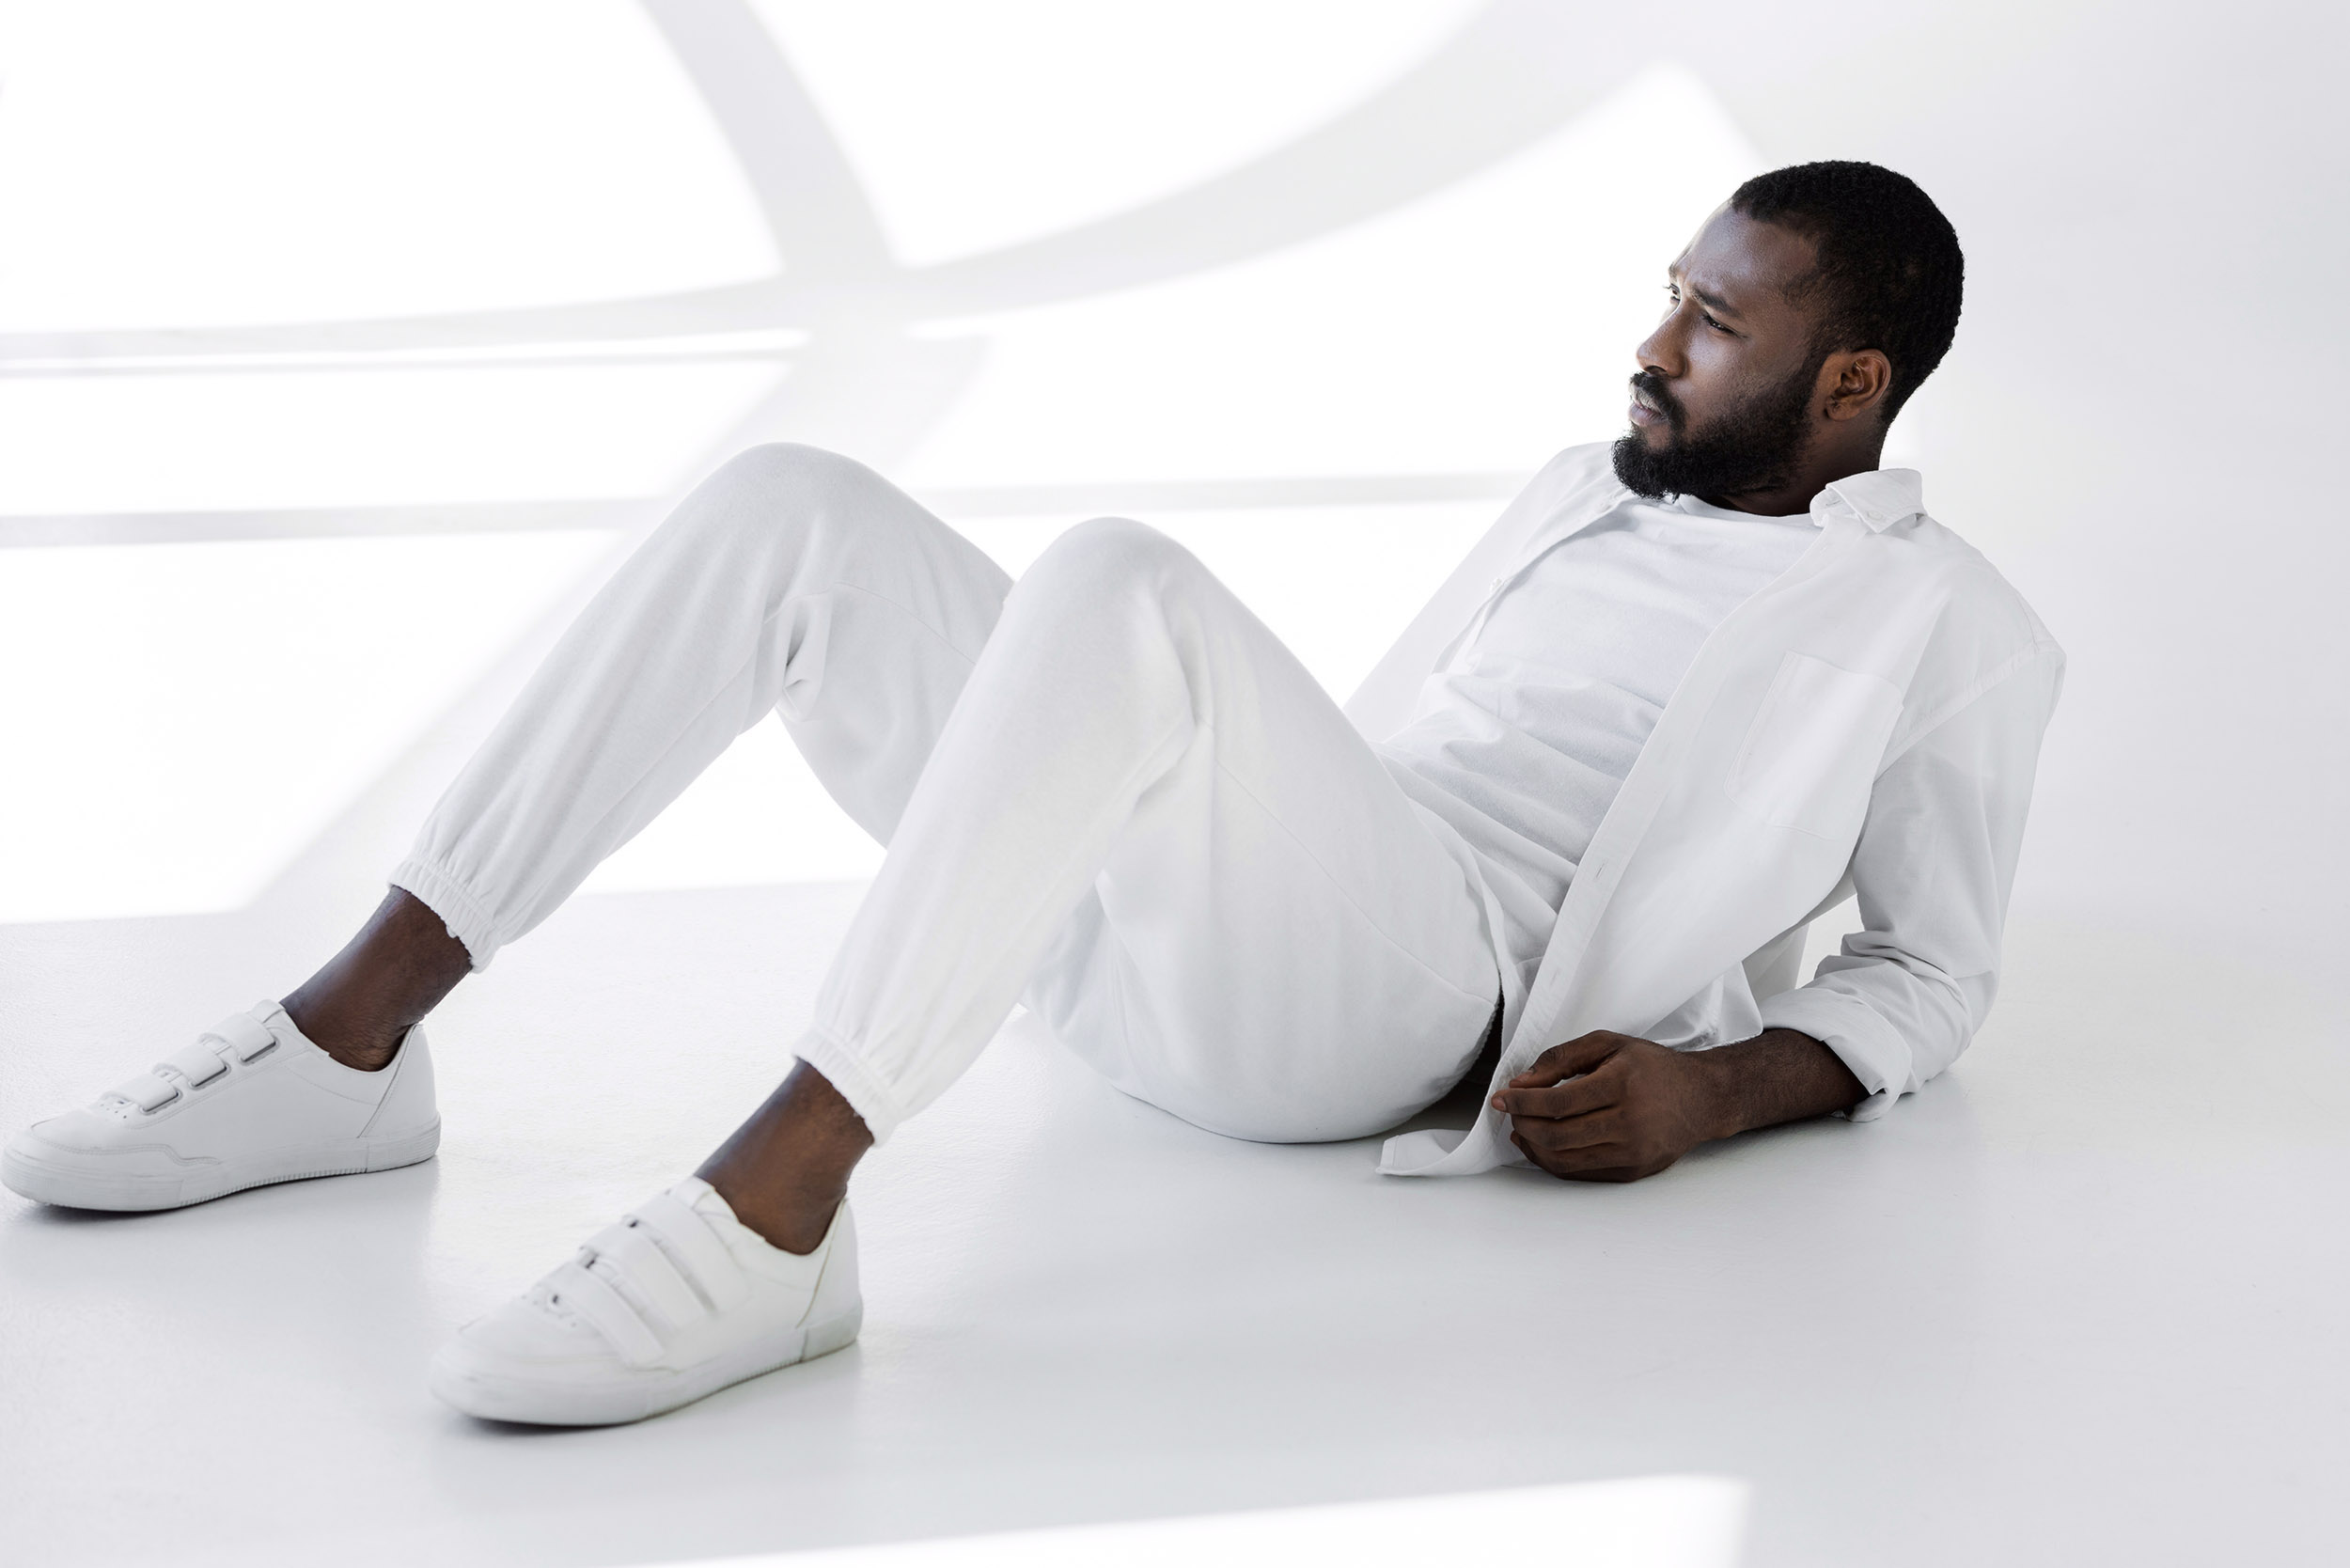 Handsome African American man dressed in all white sitting on an all white floor